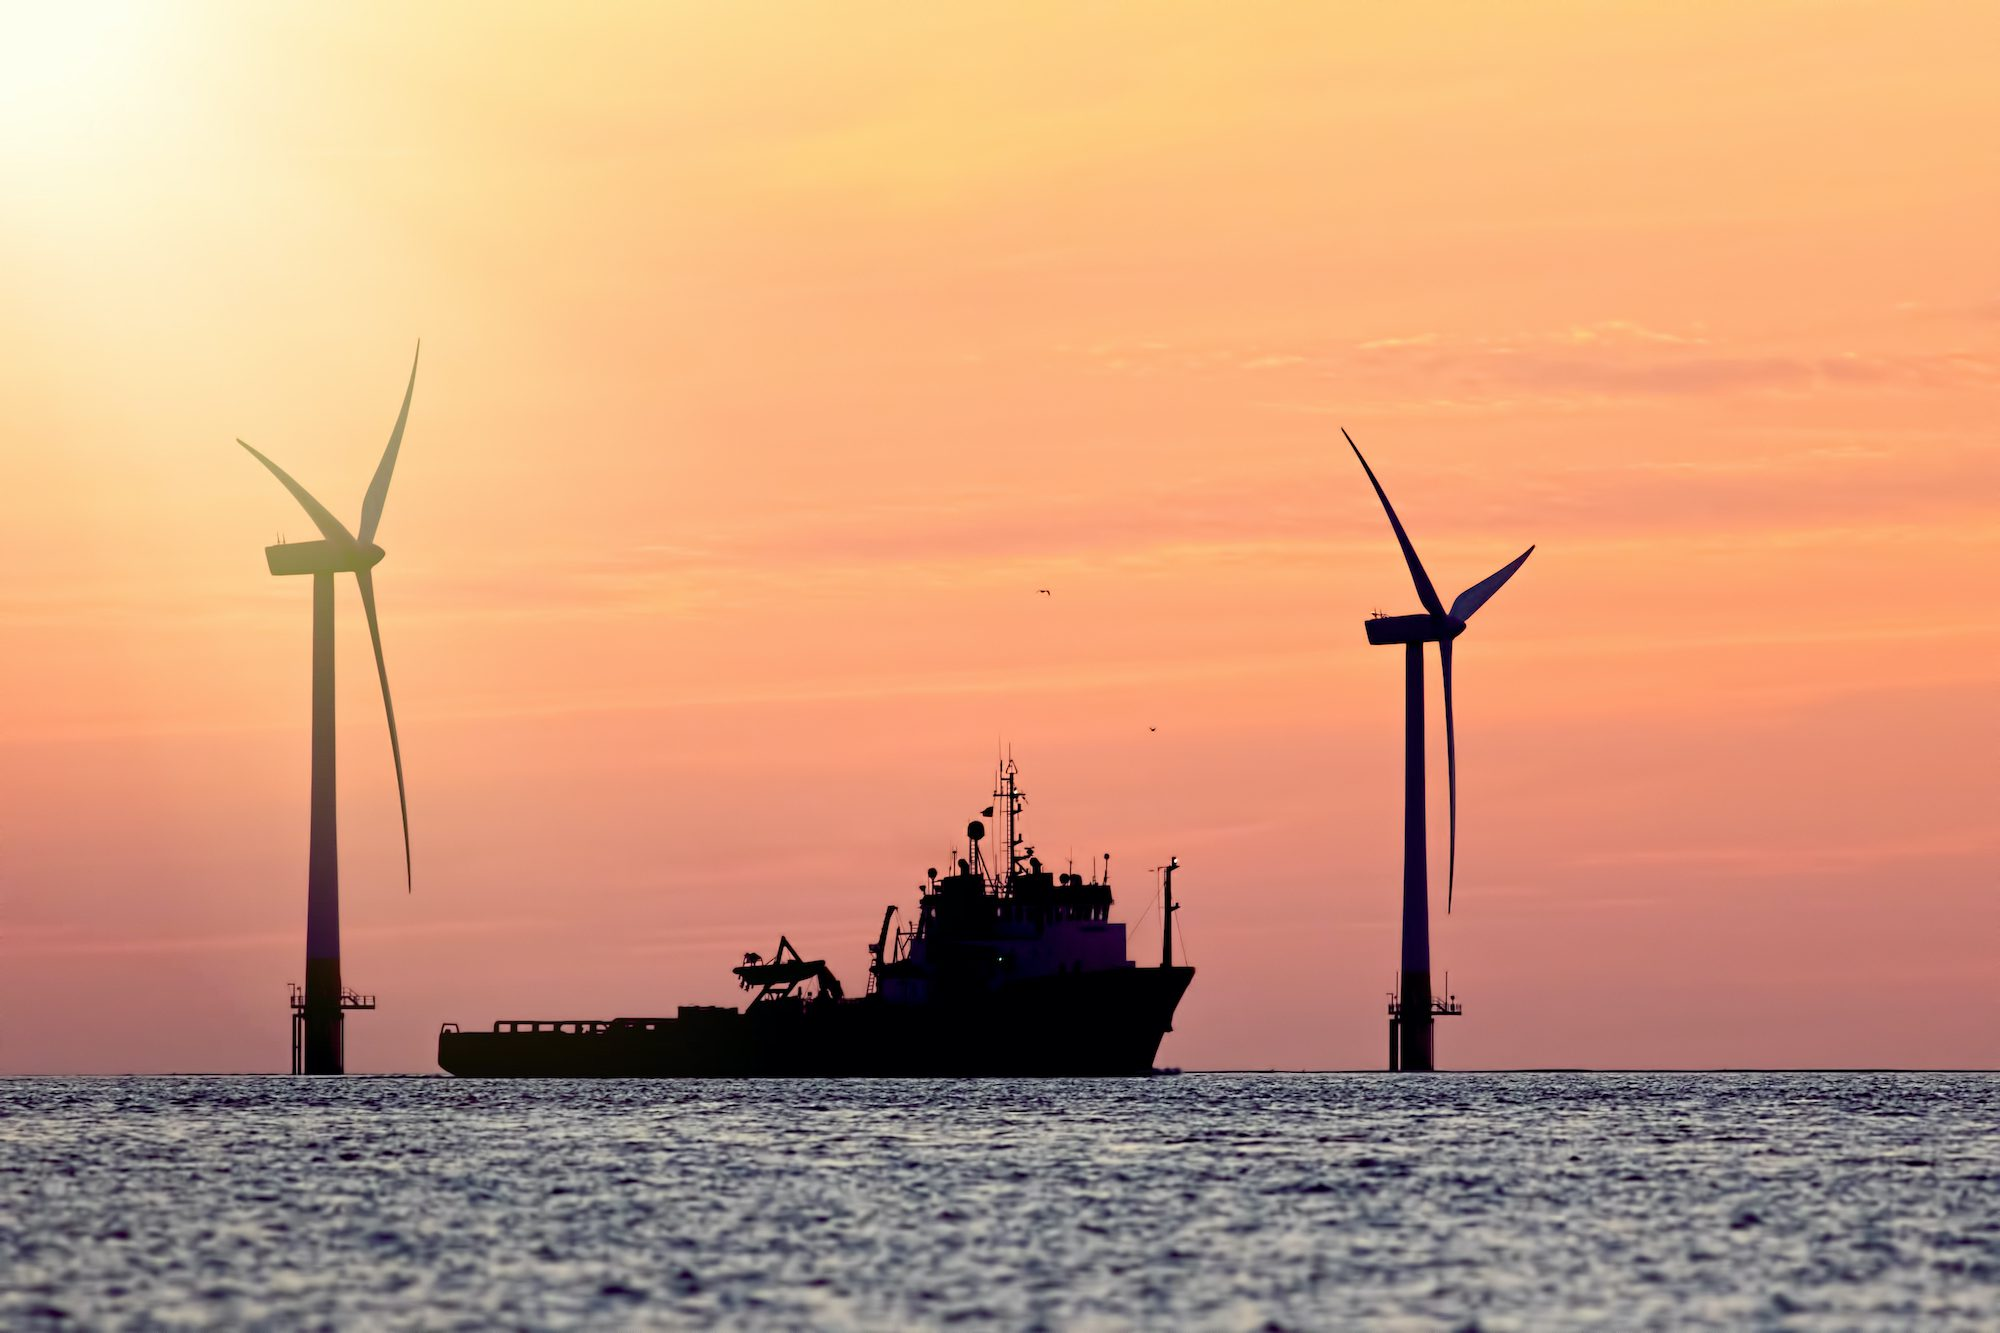 offshore wind farm with vessel in foreground